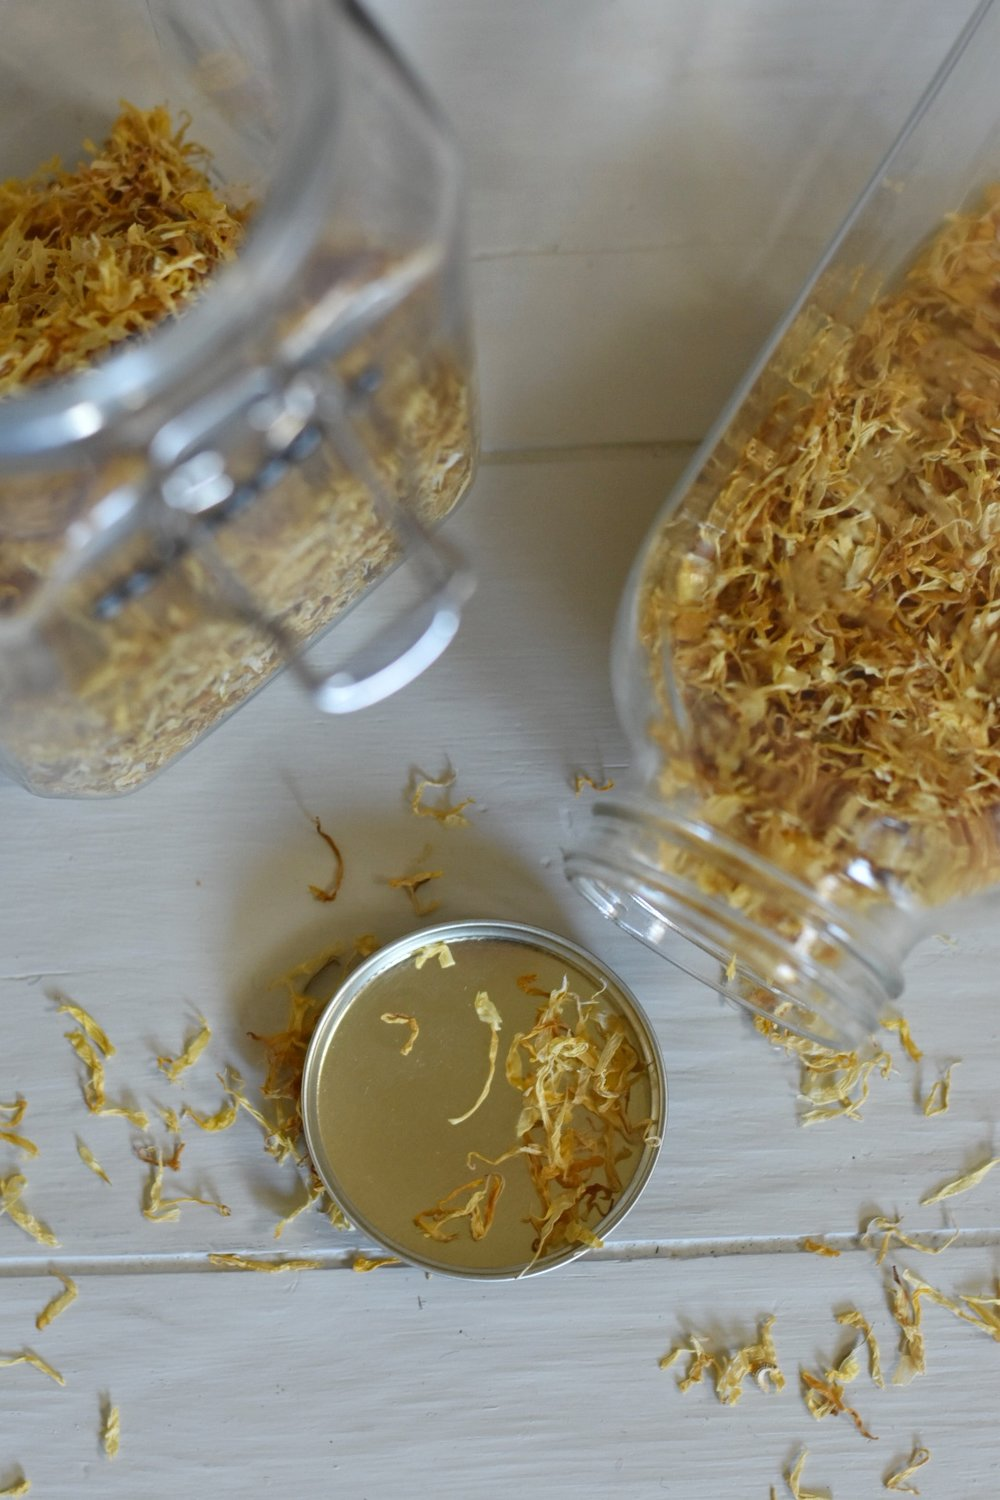 Infused Calendula Oil